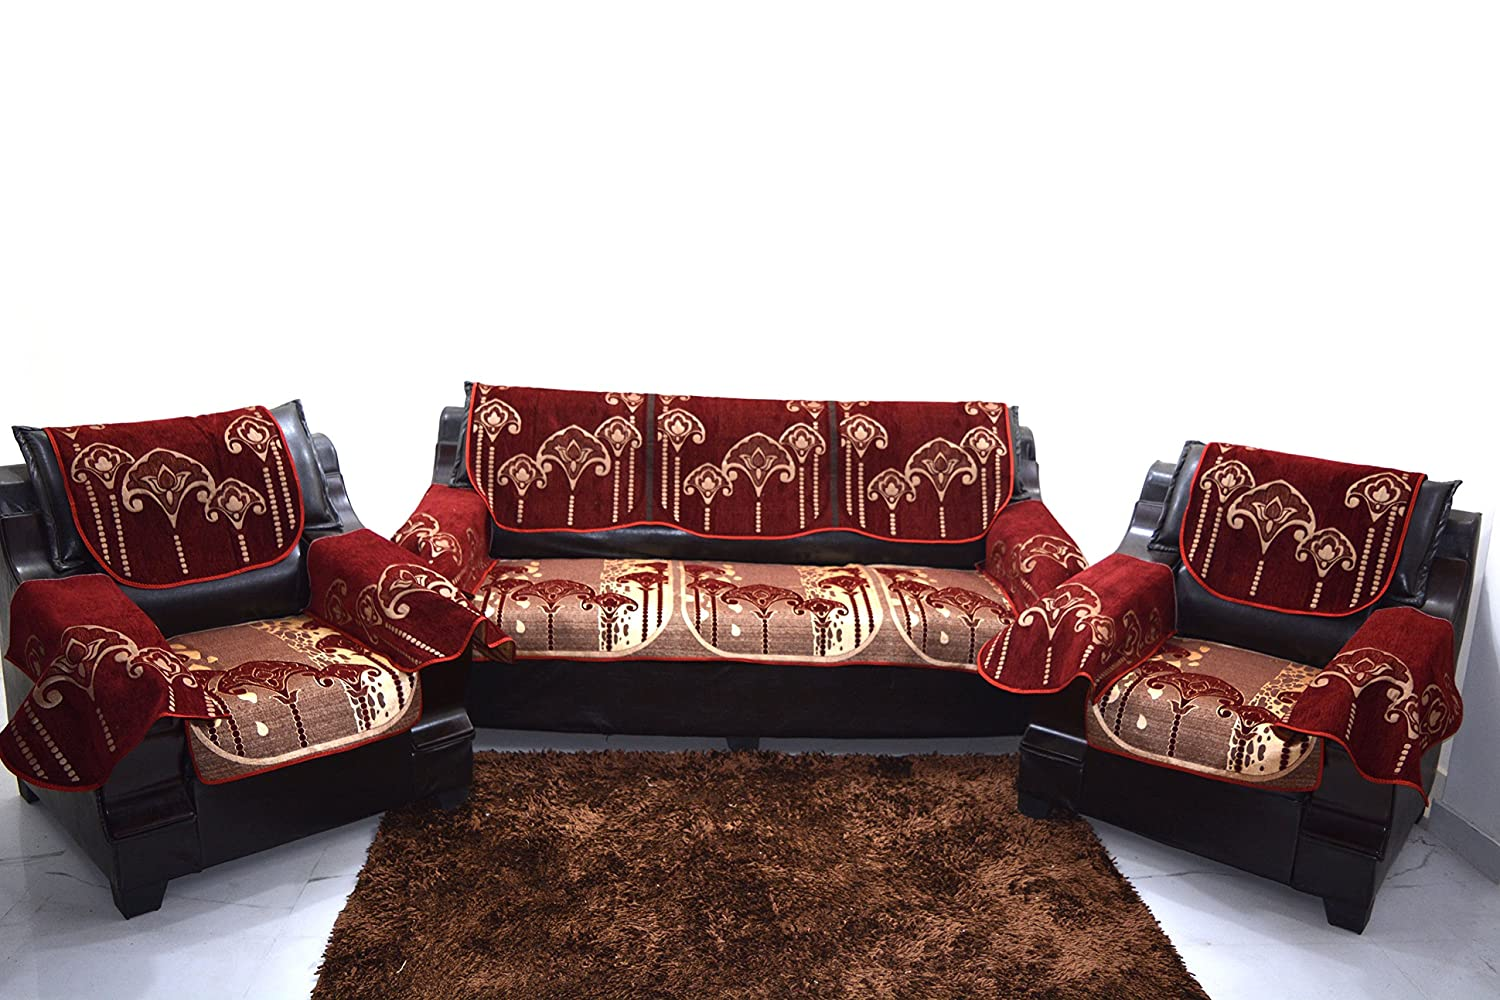 Incredible Buy A P Handloom Maroon Sofa Cover With Arm Set Of 12 Pics Pabps2019 Chair Design Images Pabps2019Com